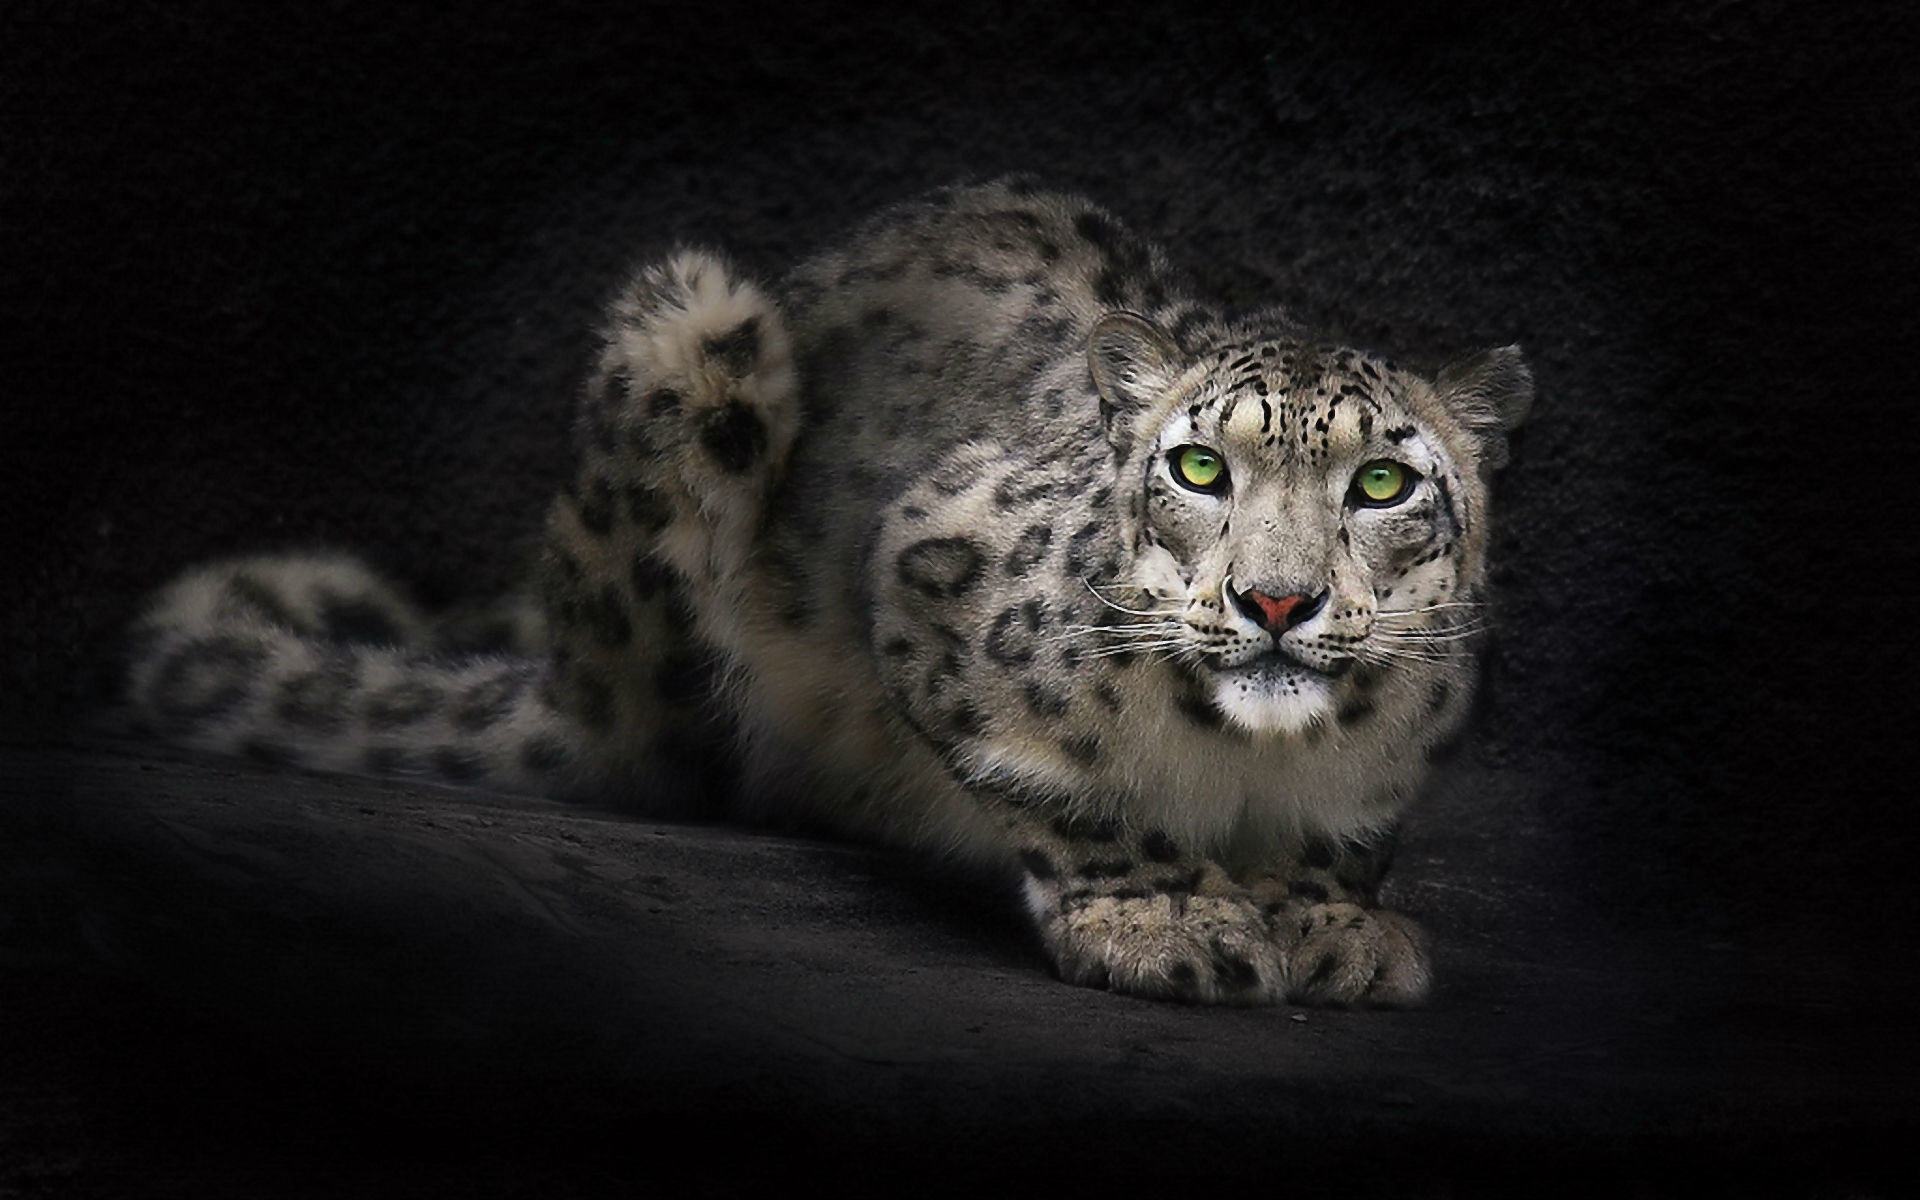 Download hd 1920x1200 Snow Leopard PC background ID:34381 for free